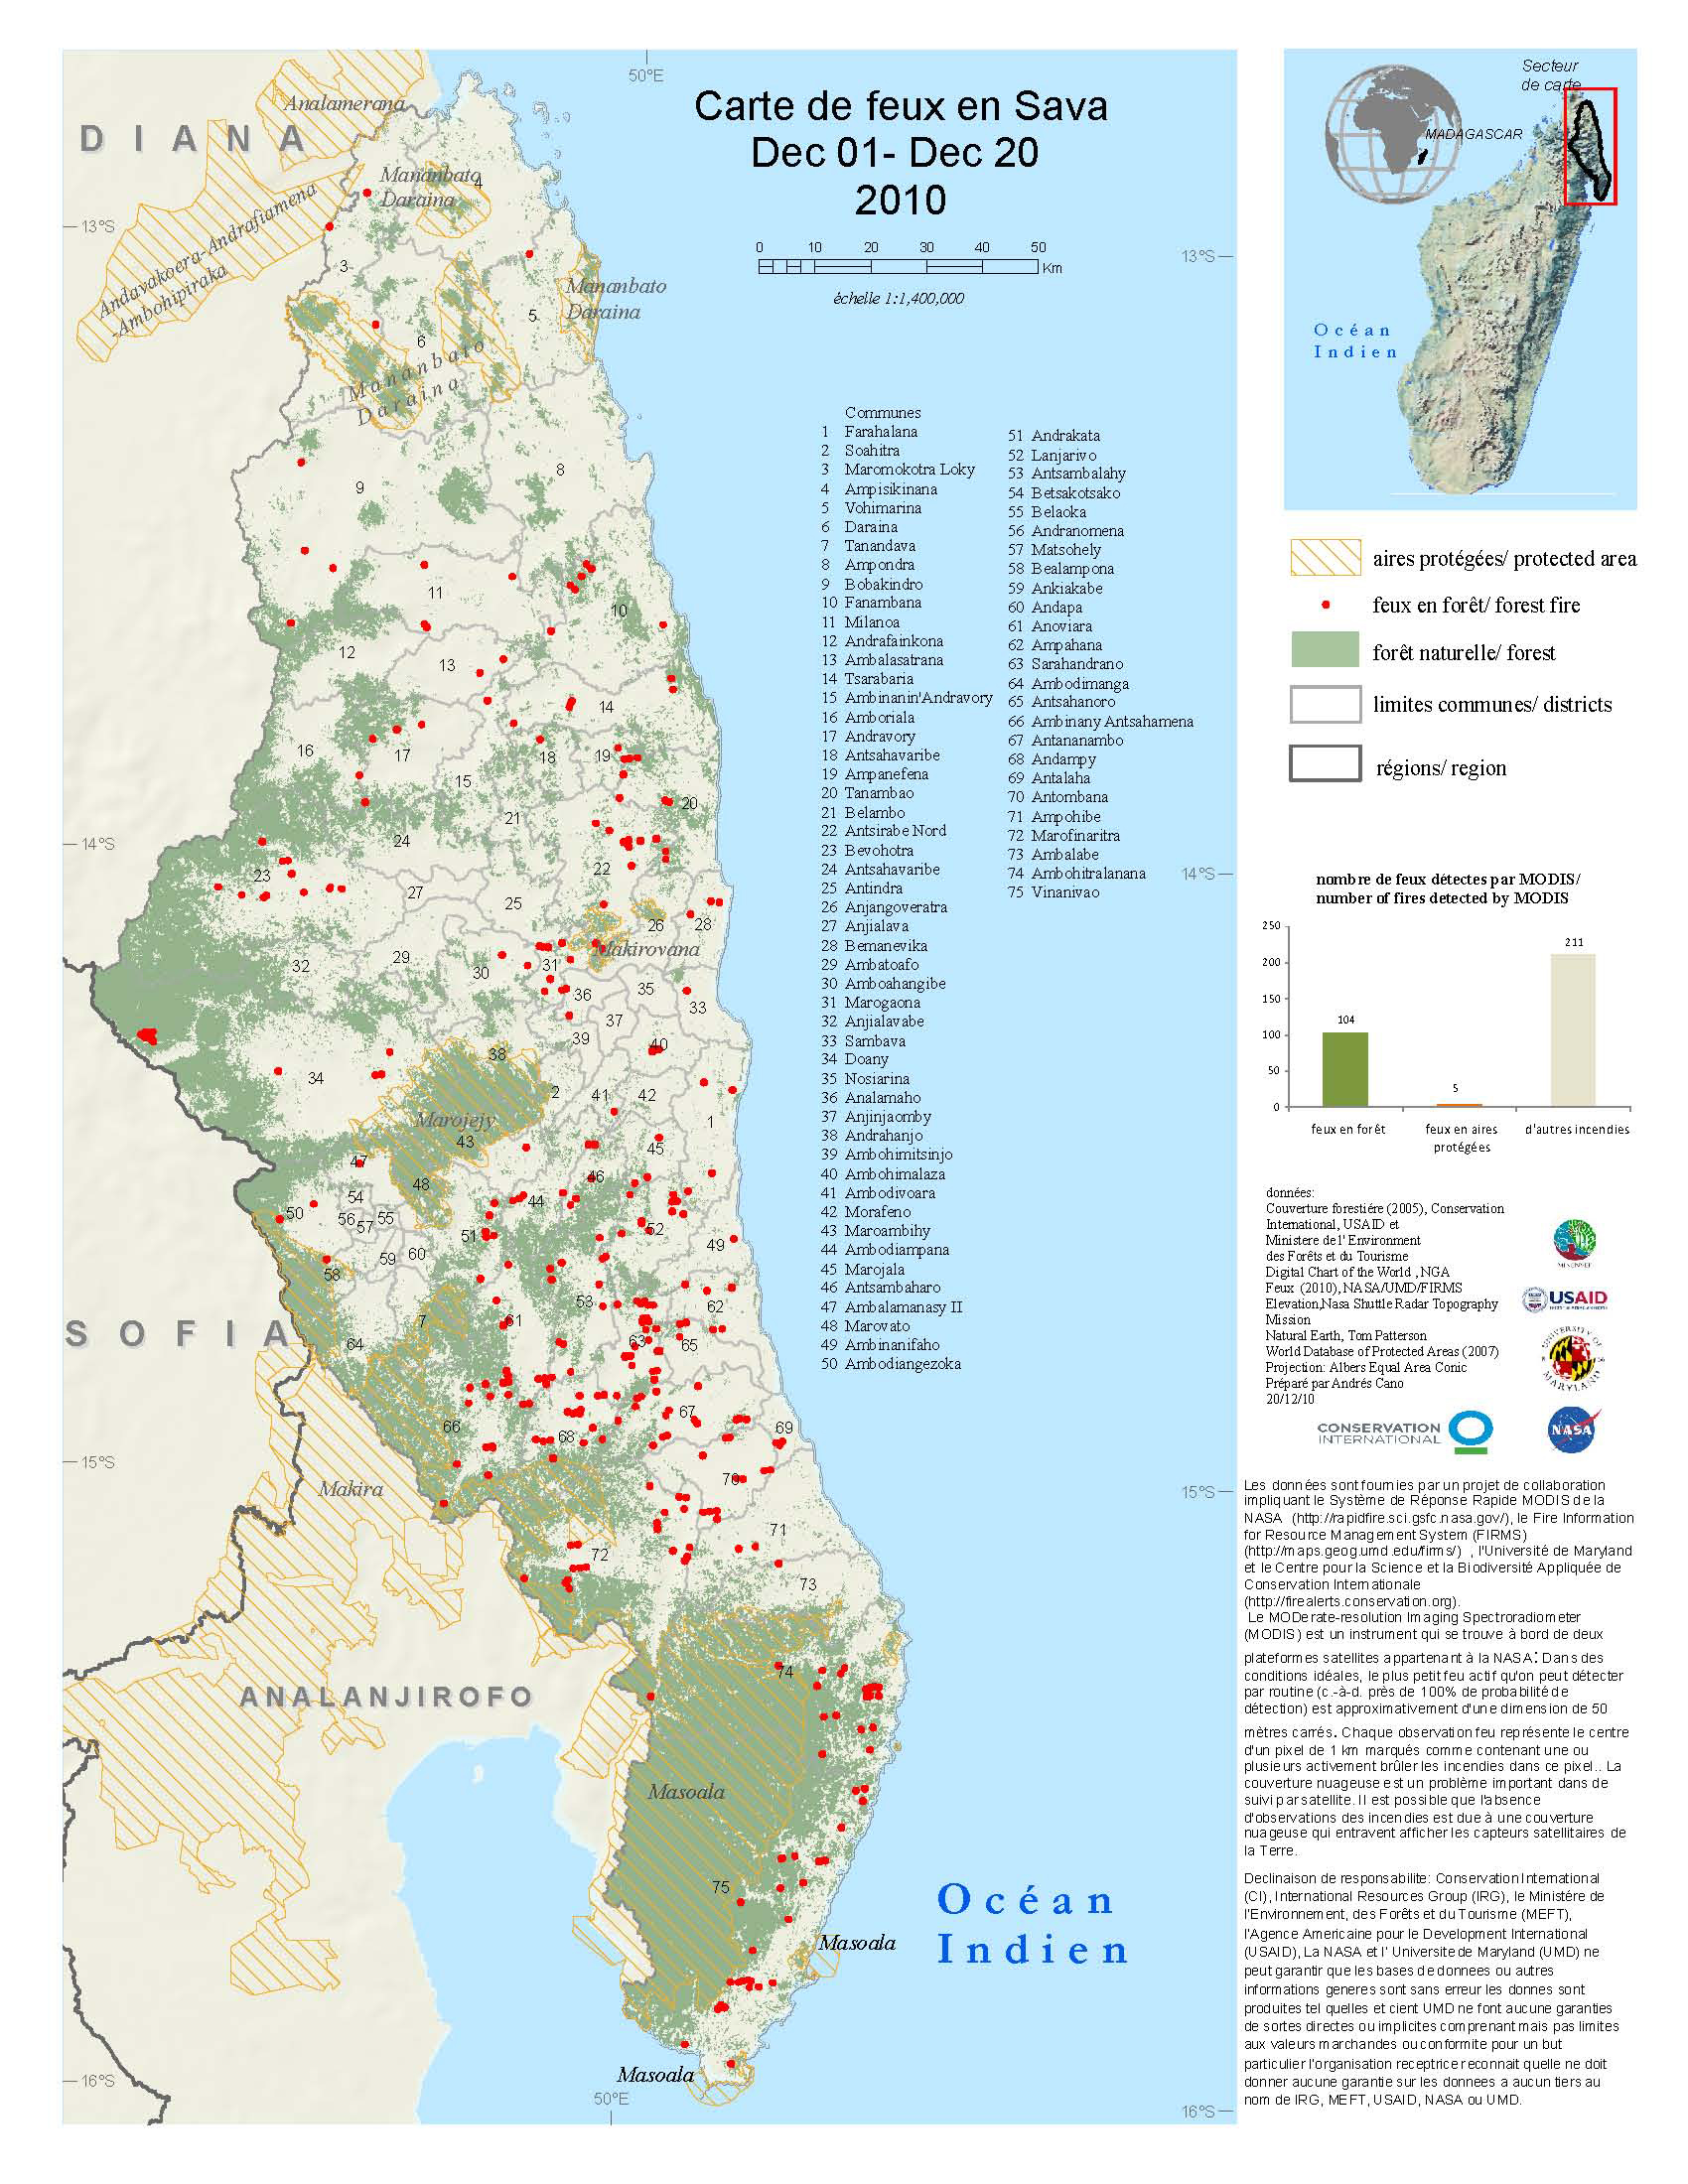 Satellite Data Reveals Fires In Region Plagued By Illegal Logging In Madagascar